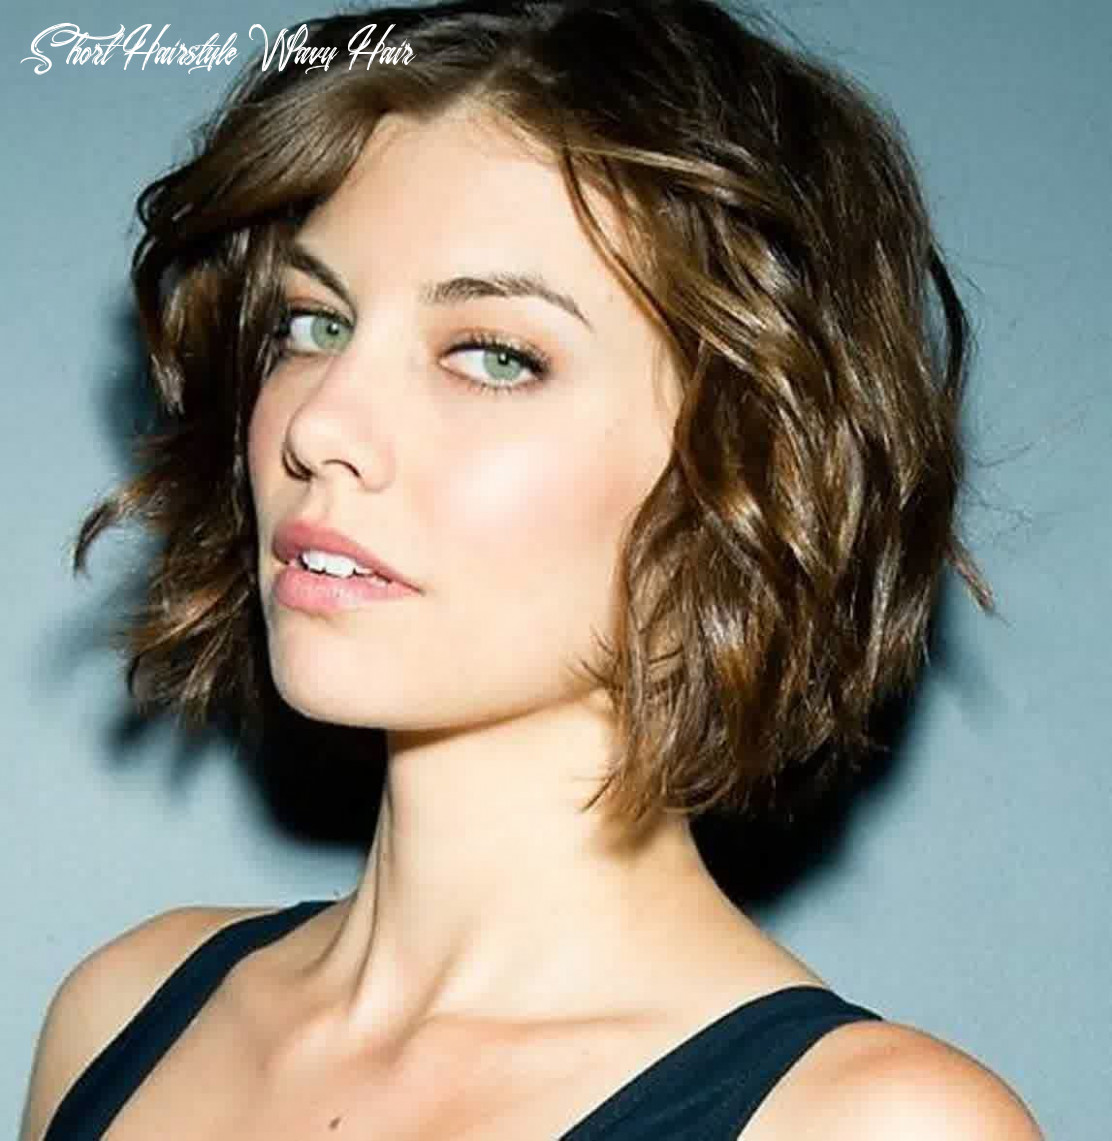 Short hairstyles for oval faces with wavy hair | short wavy